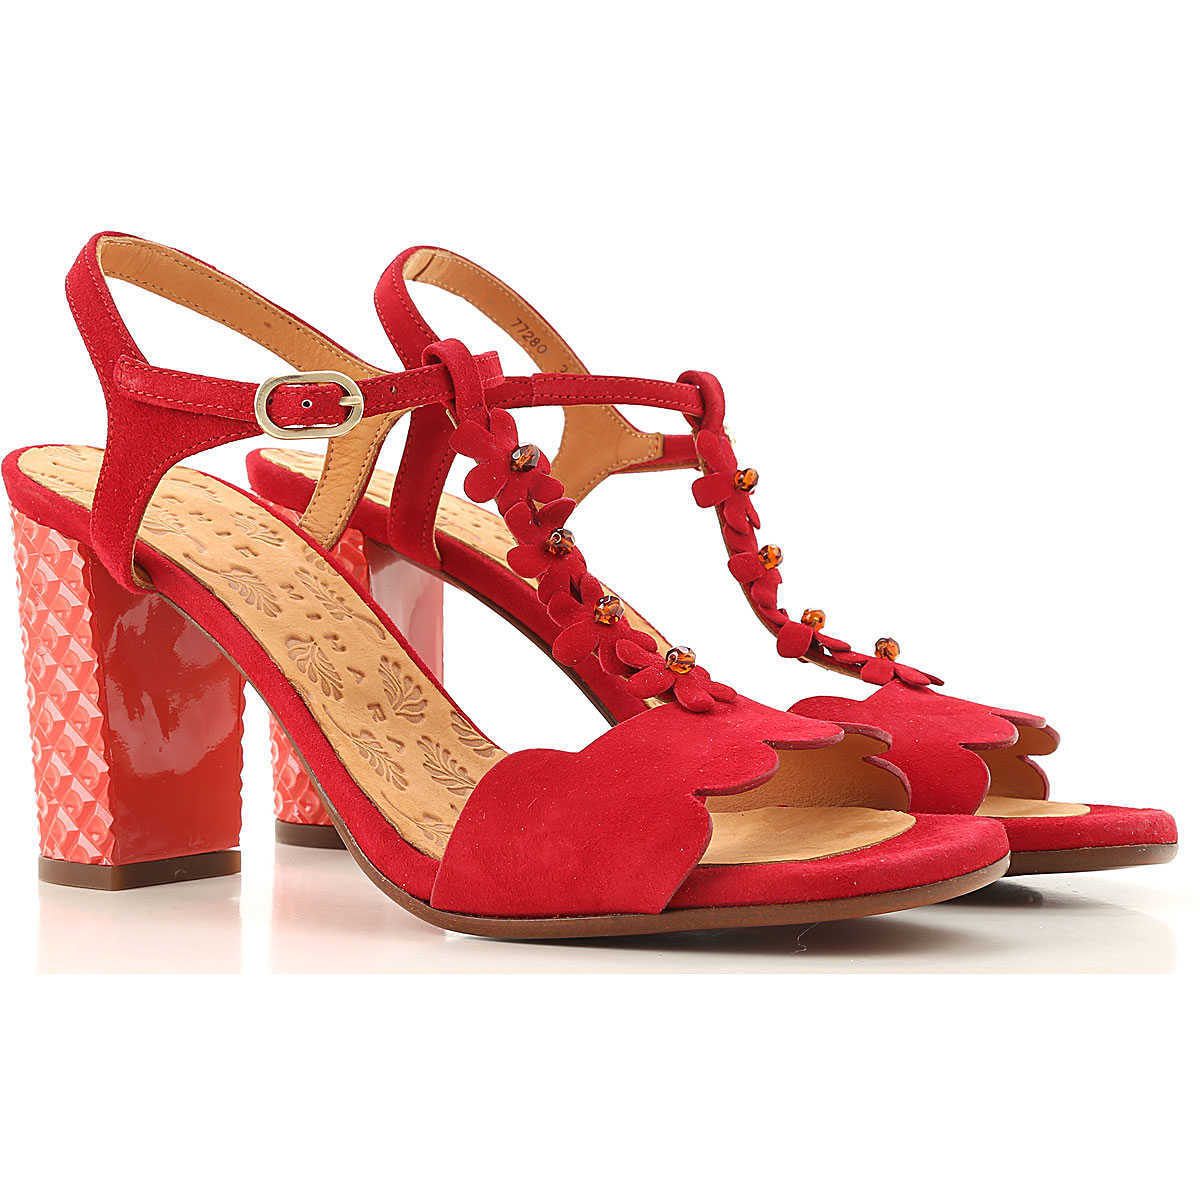 Chie Mihara Sandals for Women On Sale Red DK - GOOFASH - Womens SANDALS